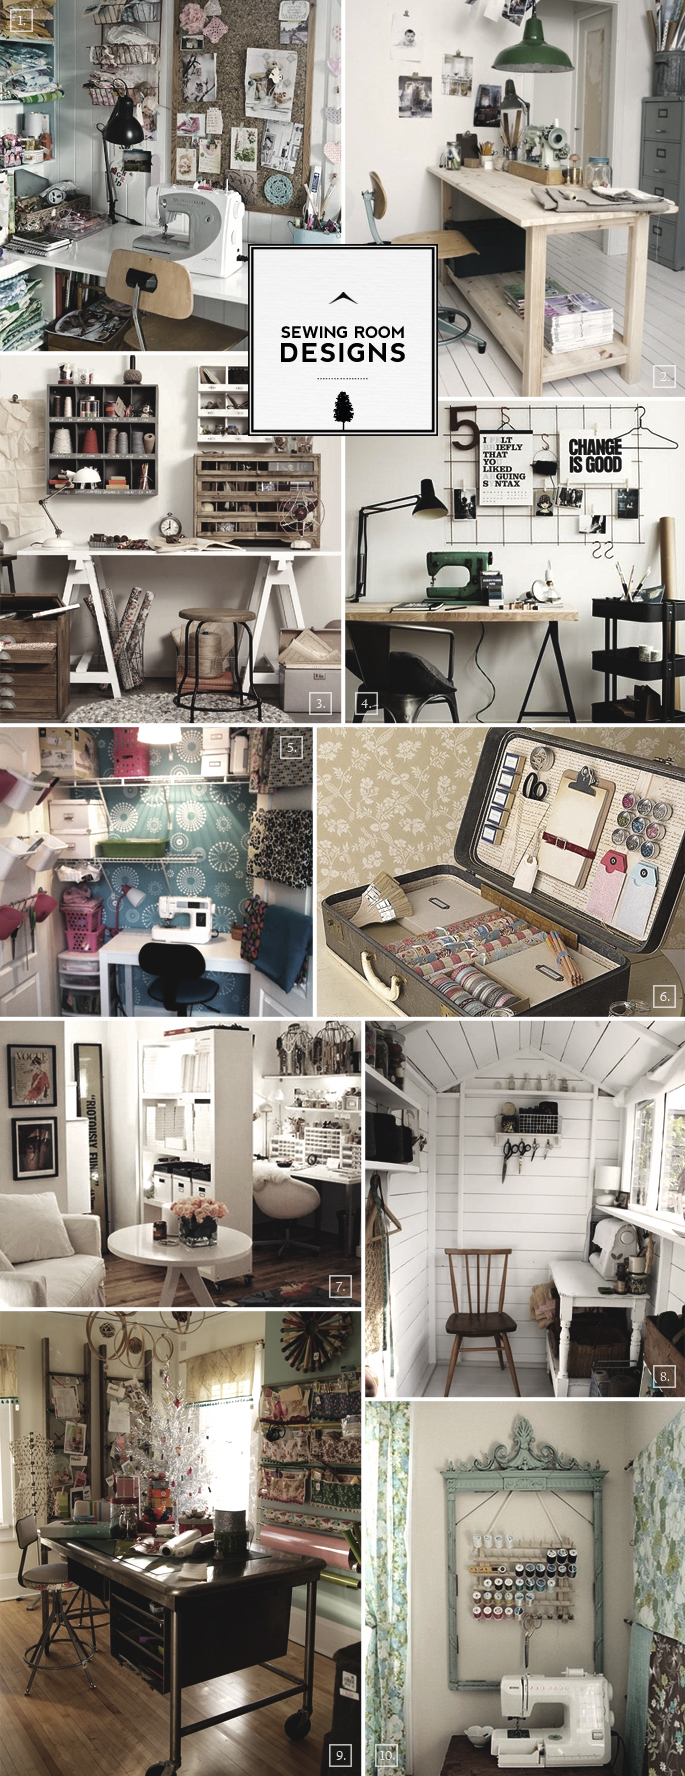 or small colorful or rustic what kind of sewing room do you want